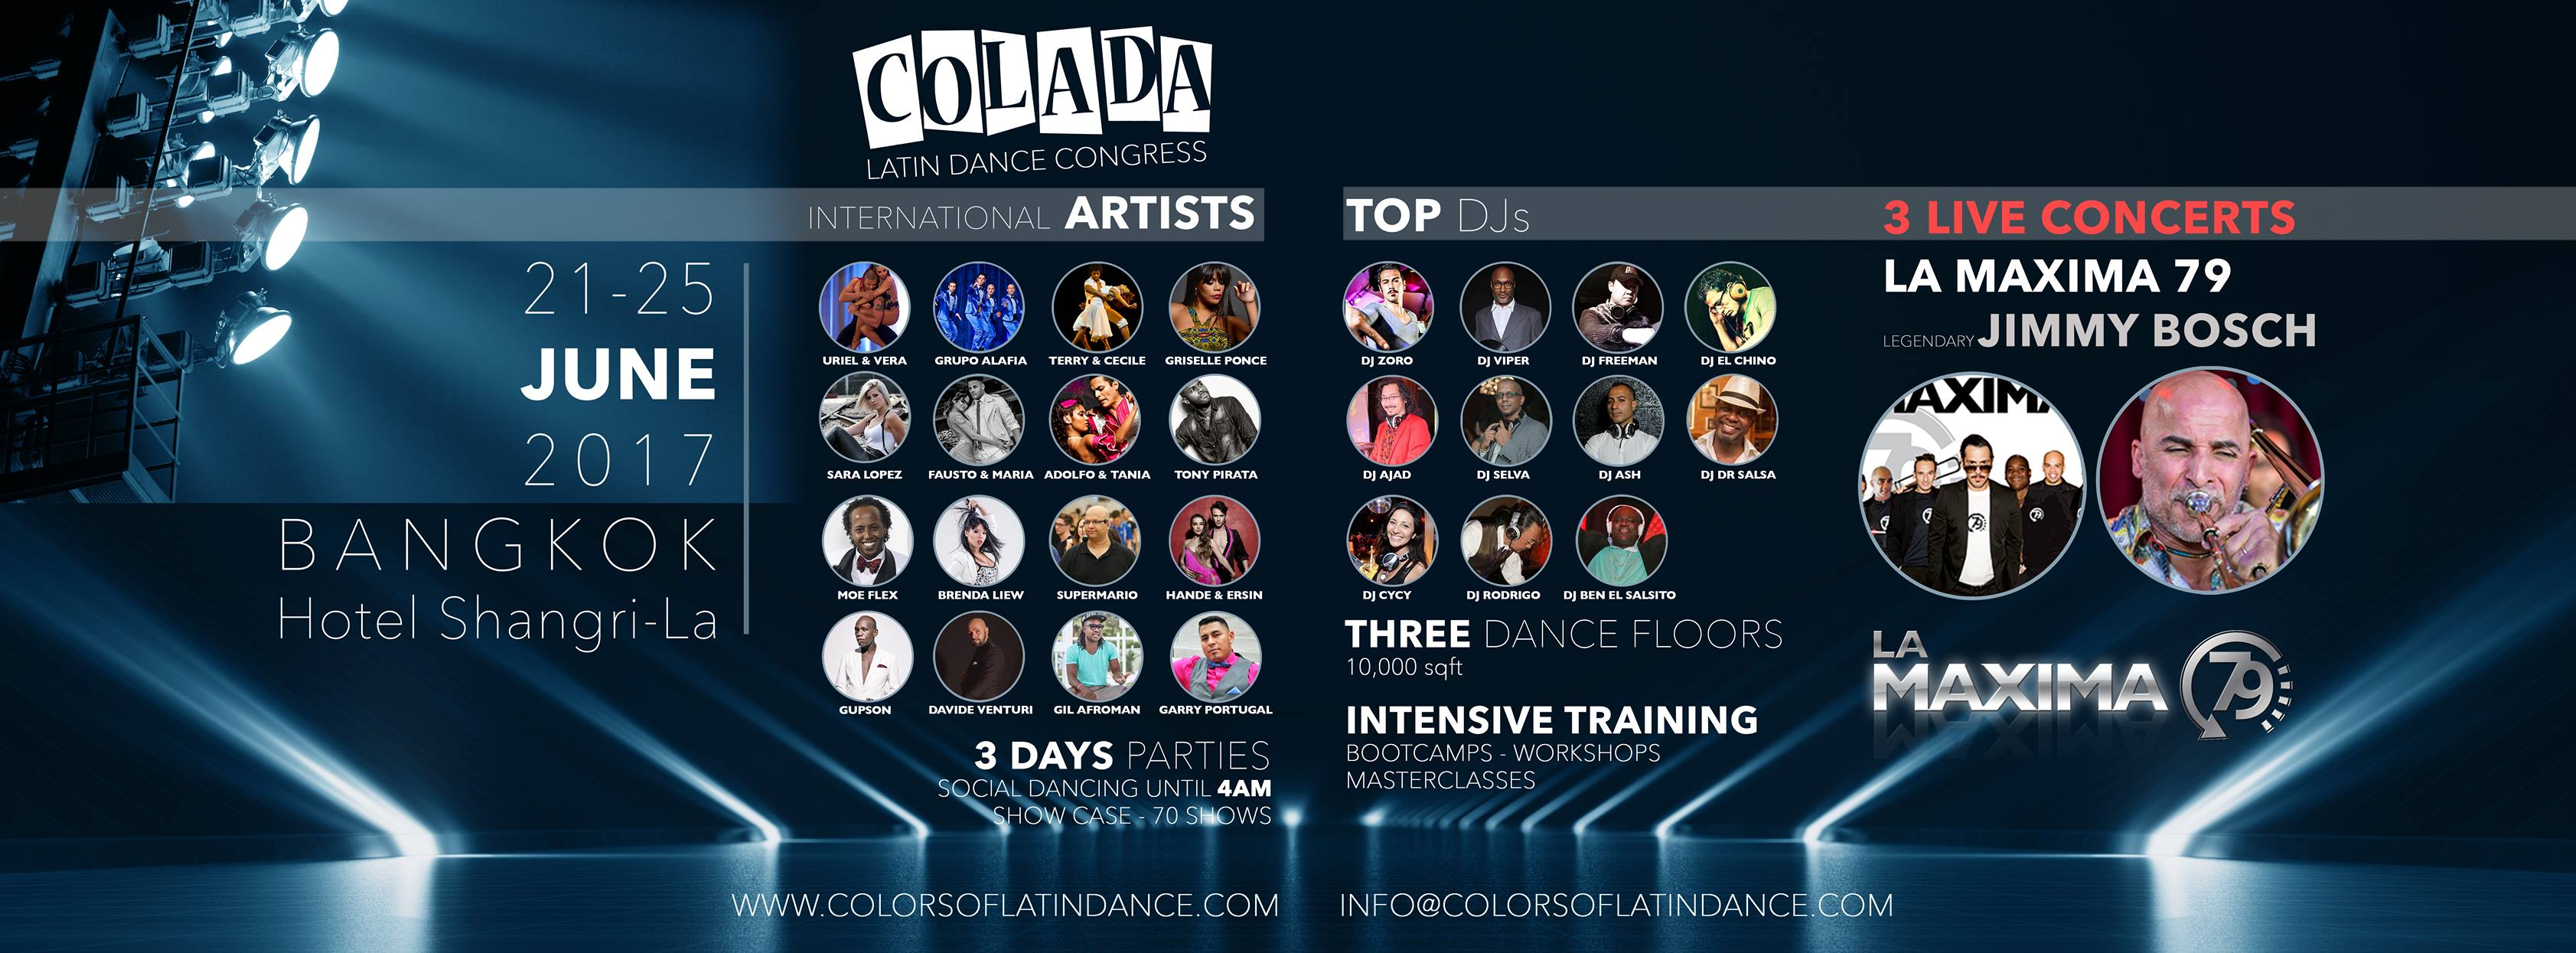 The Colada Latin Dance Congress Bangkok 2017 Is A 5 Day Latin Music And Dance Event Featuring A